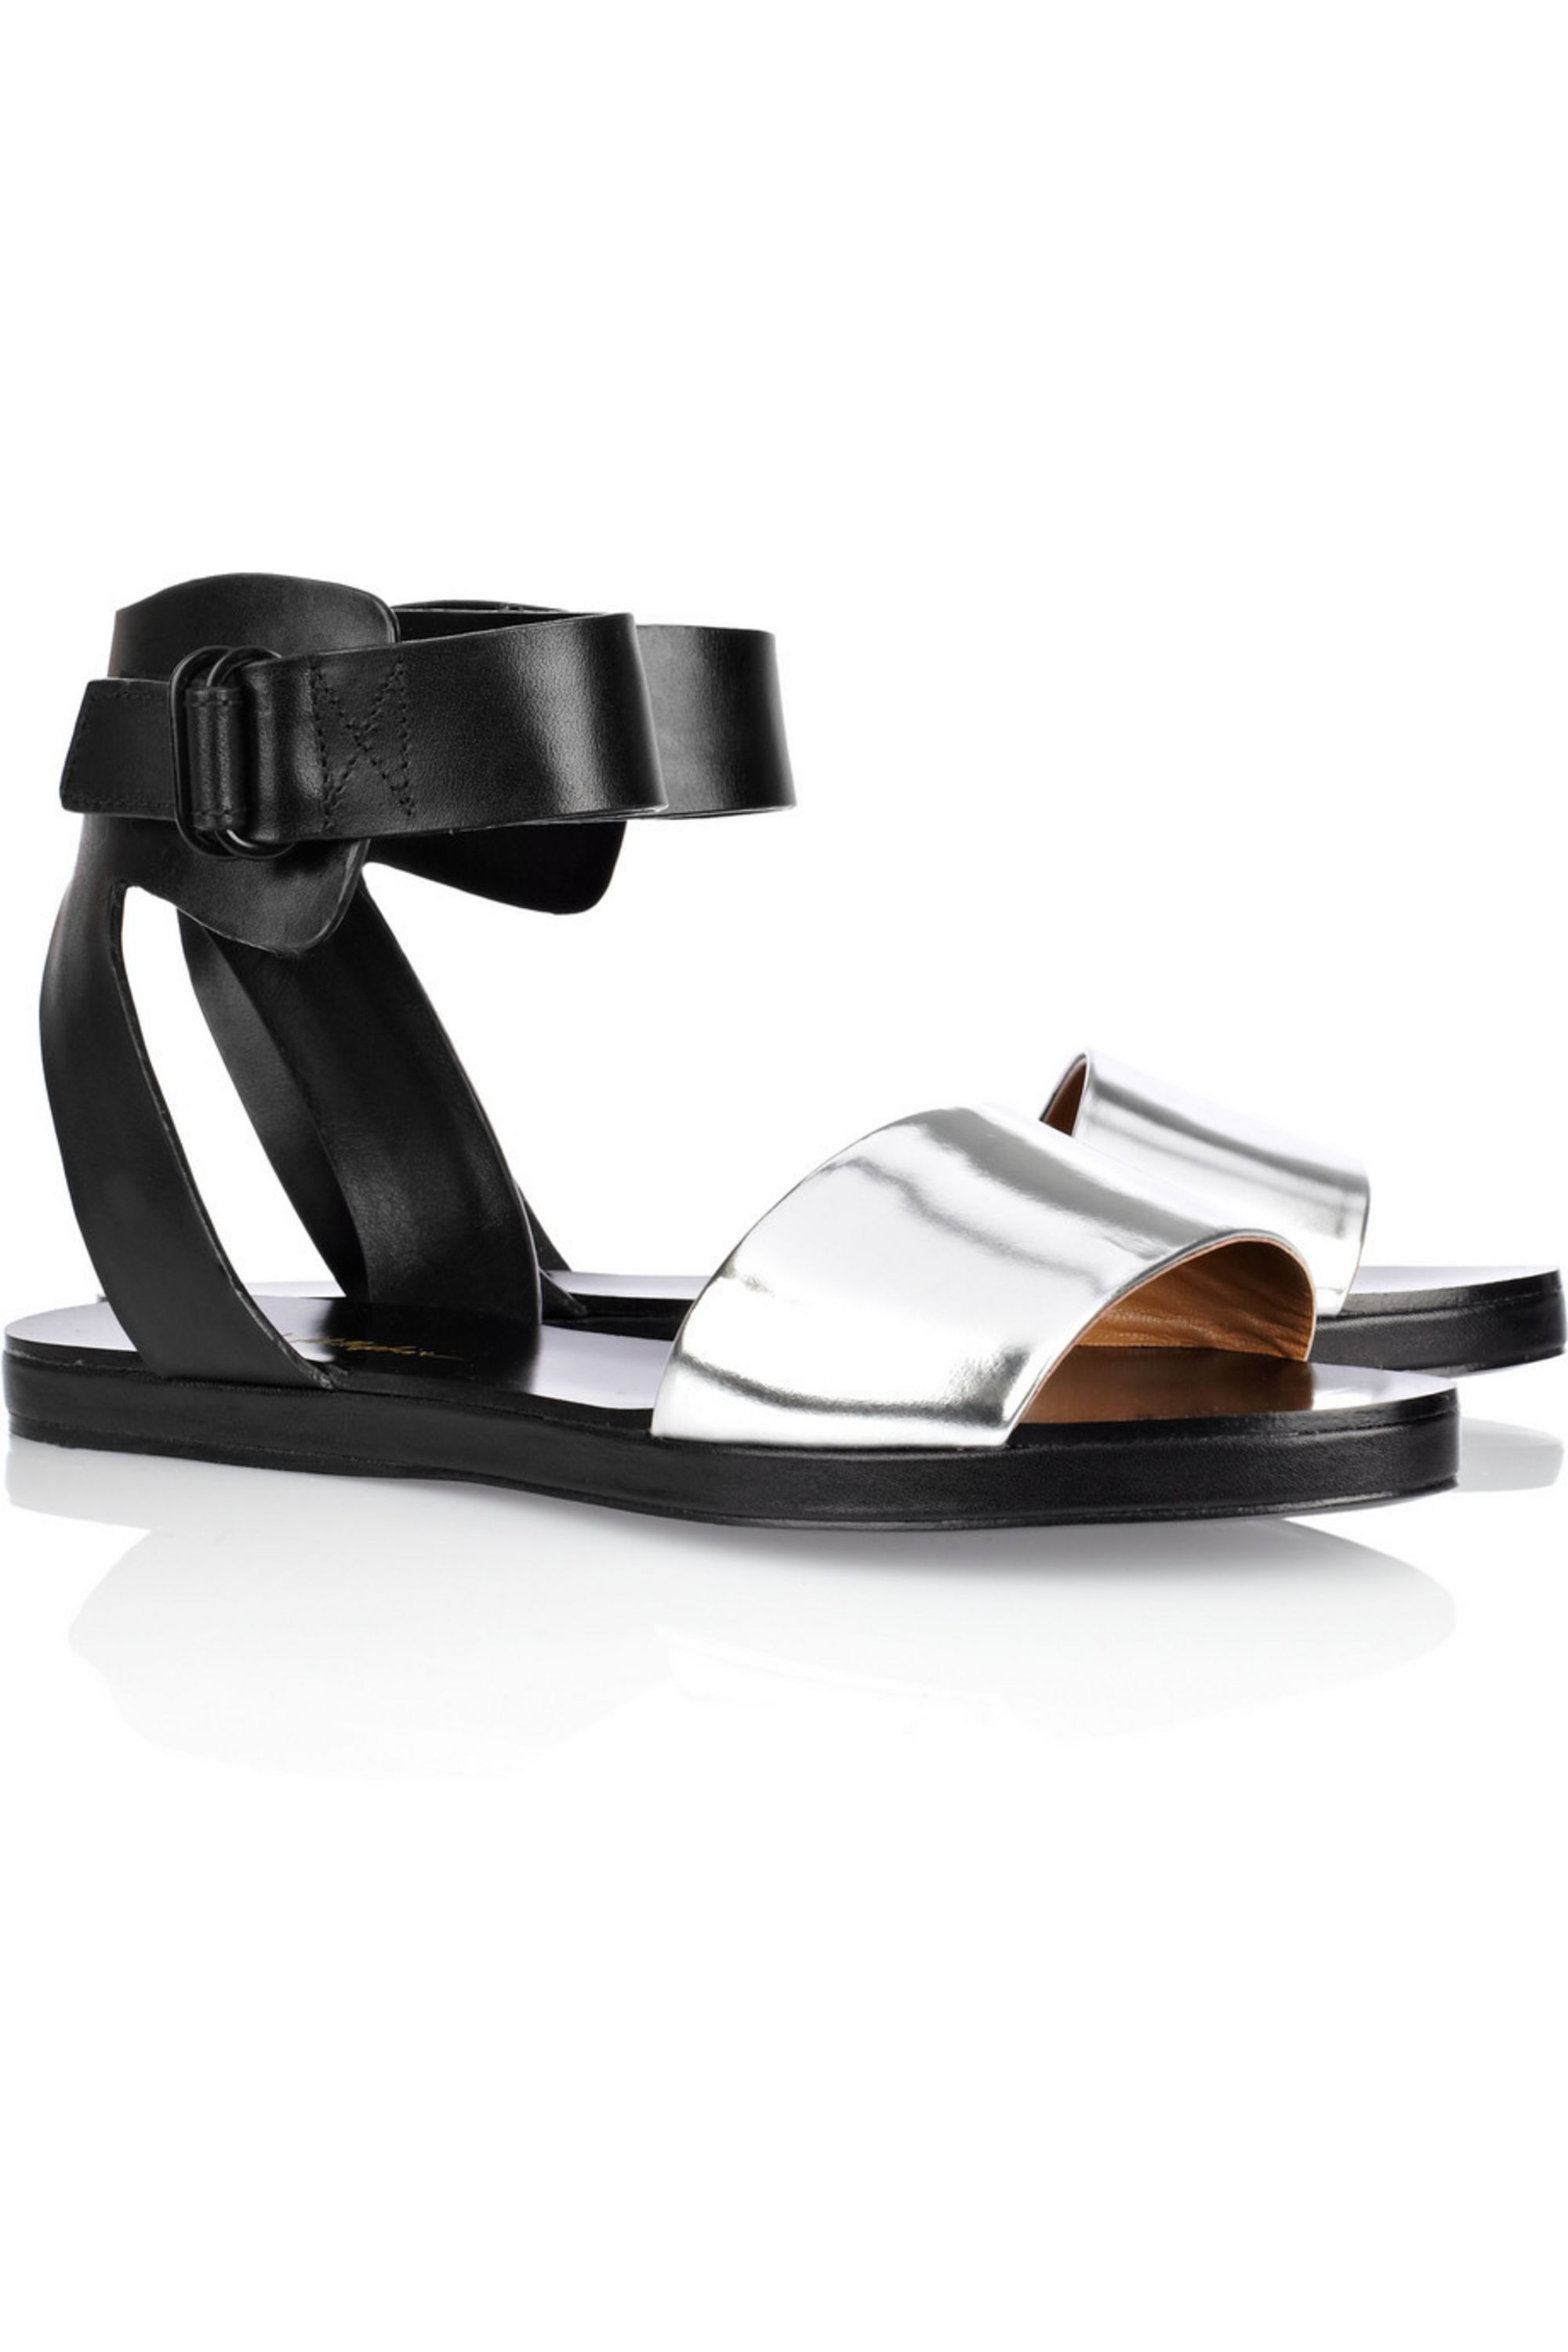 3.1 Phillip Lim Domina two-tone leather sandals